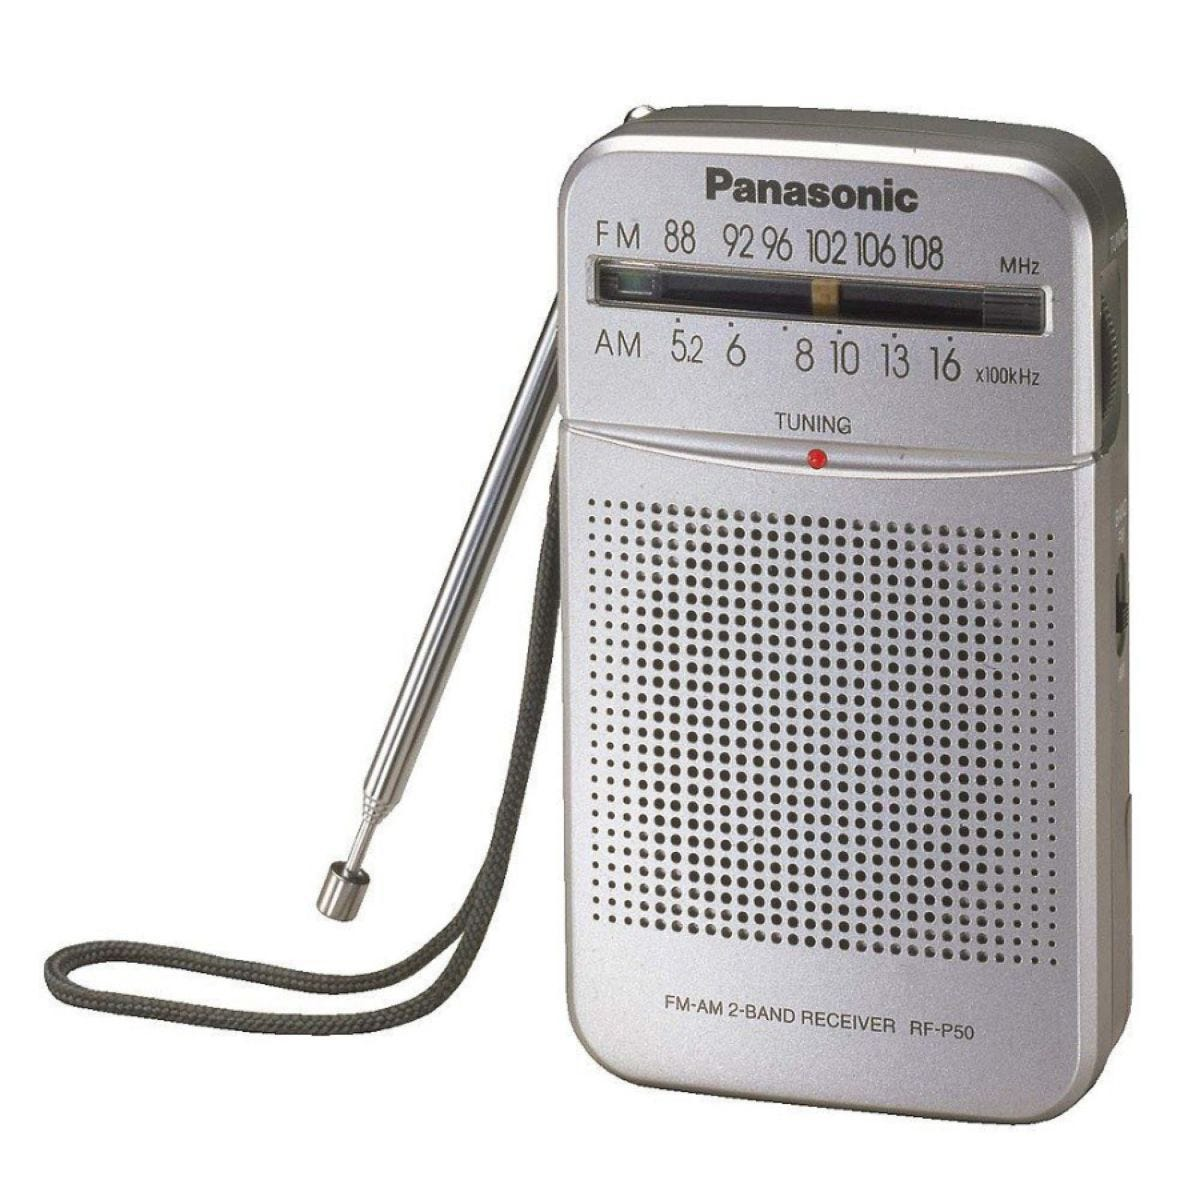 Panasonic Portable Pocket Radio